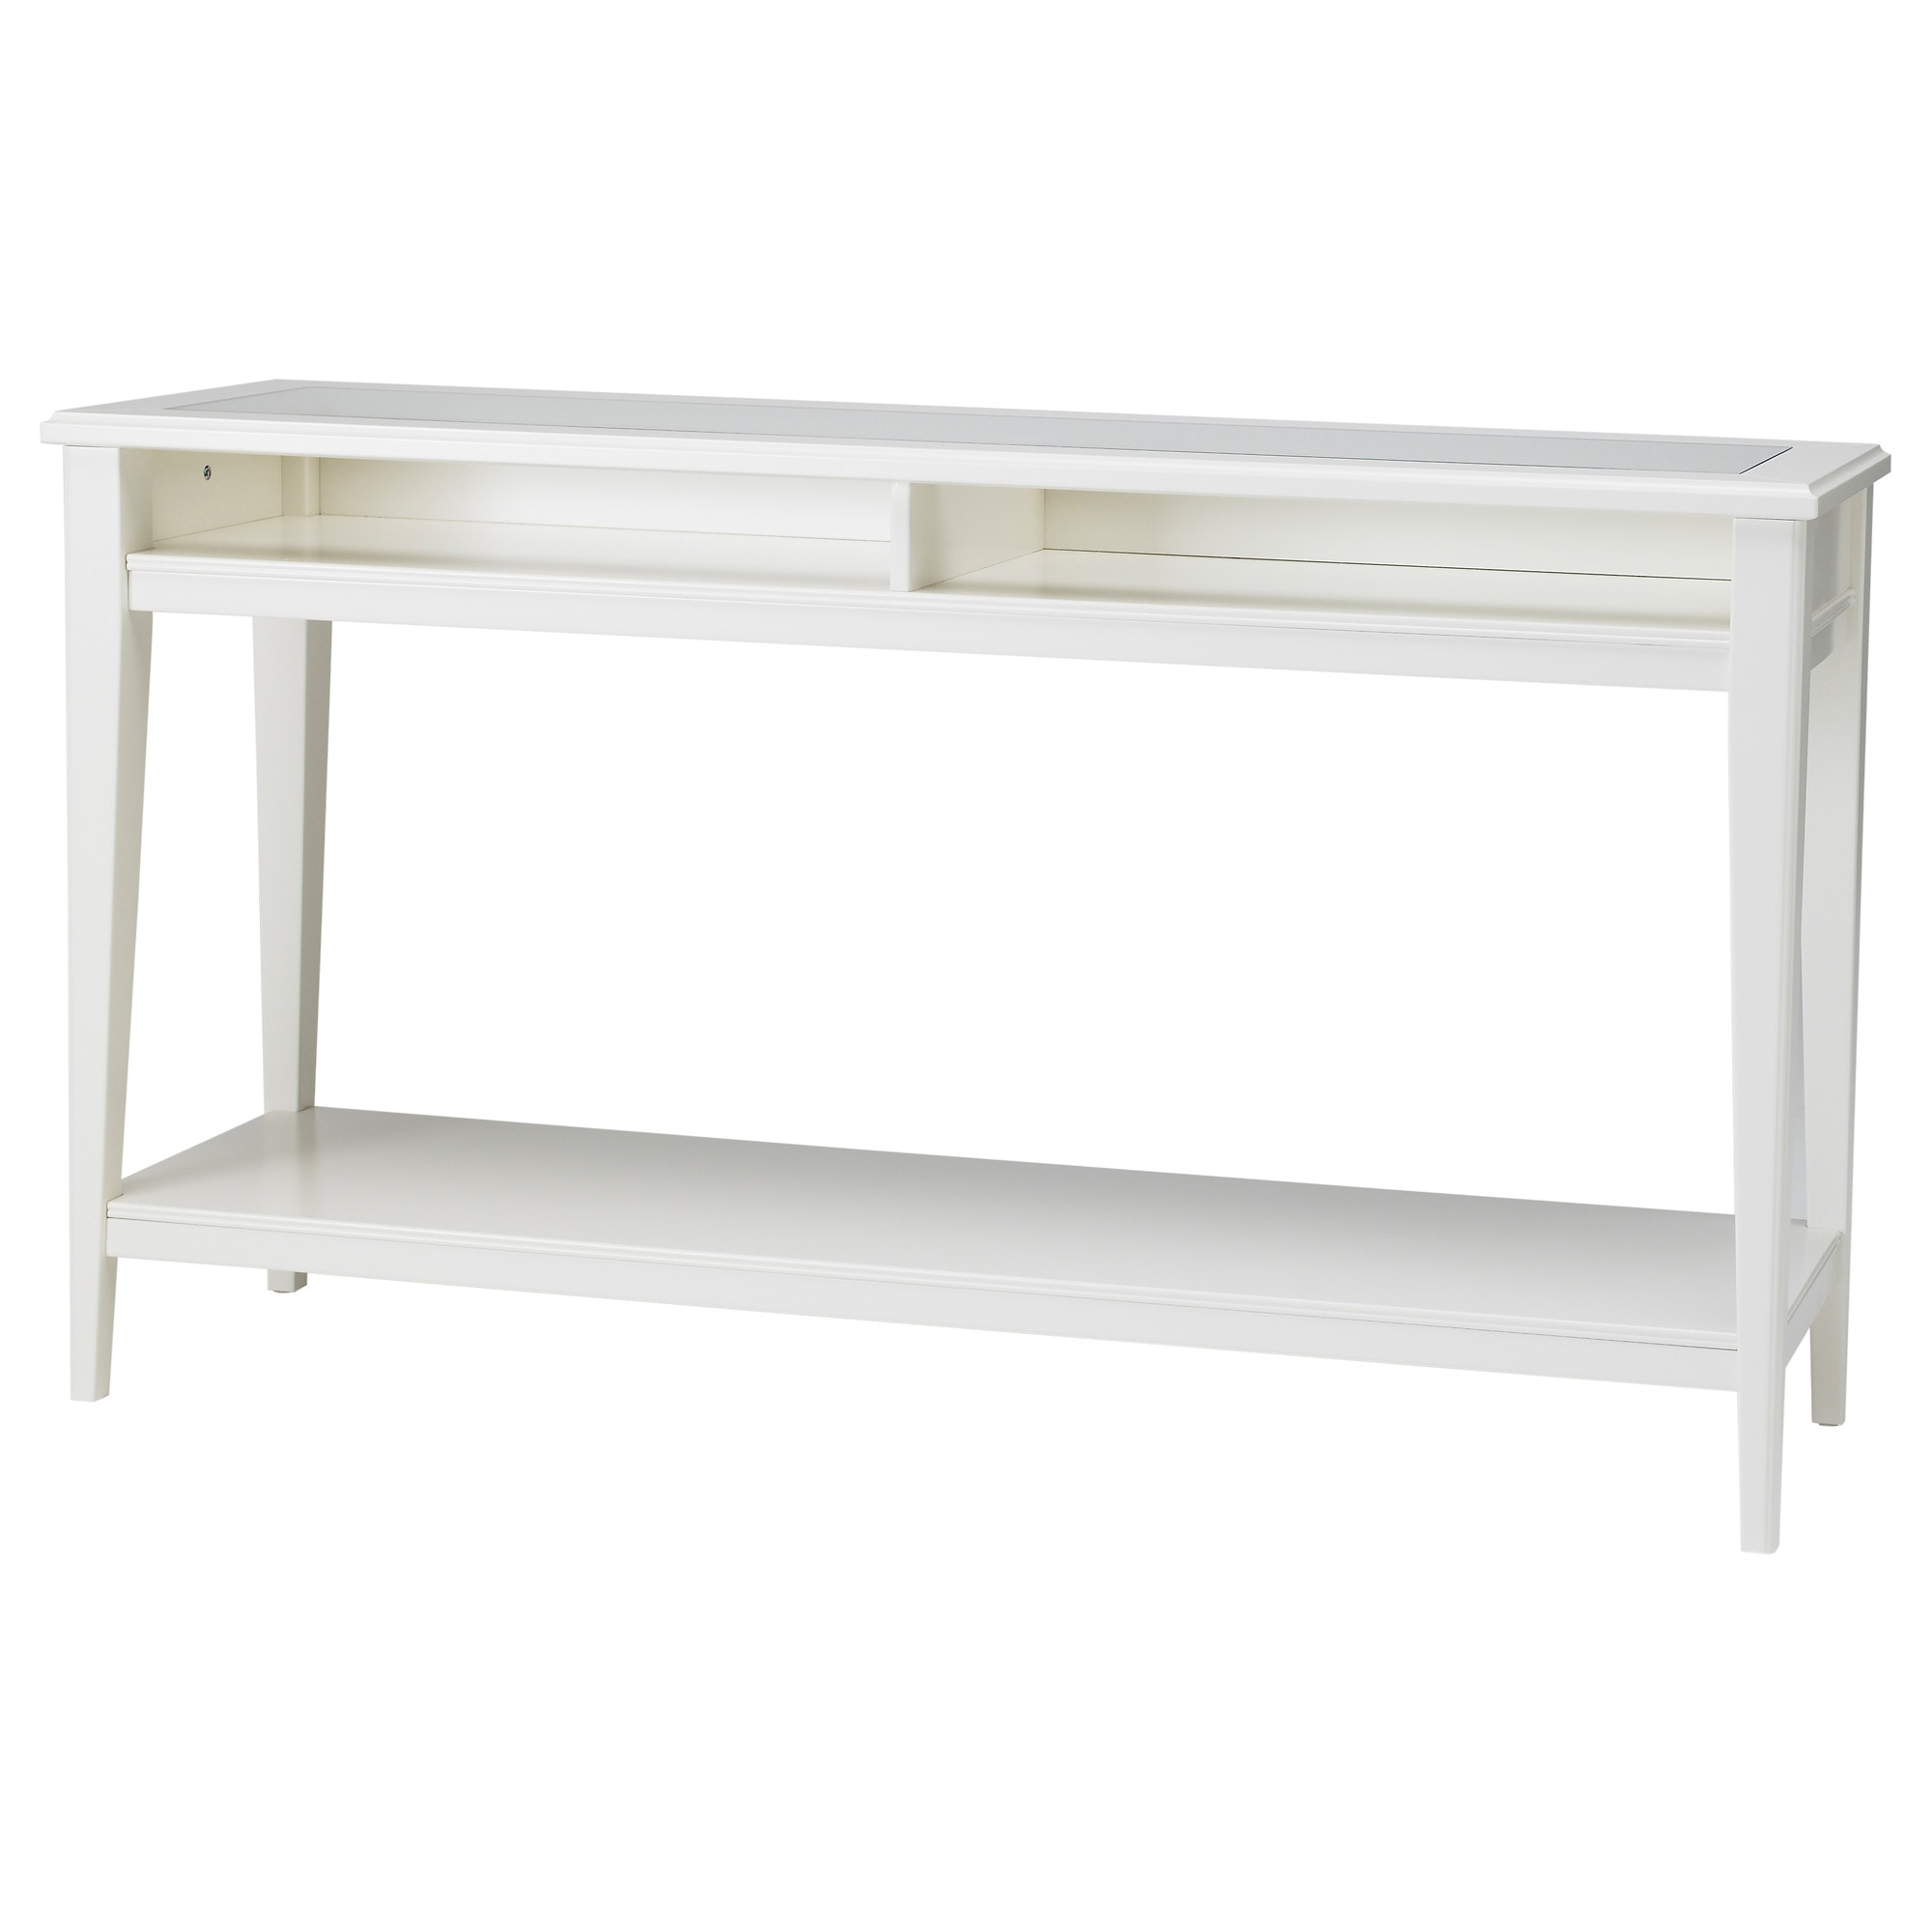 liatorp console table - gray/glass - ikea